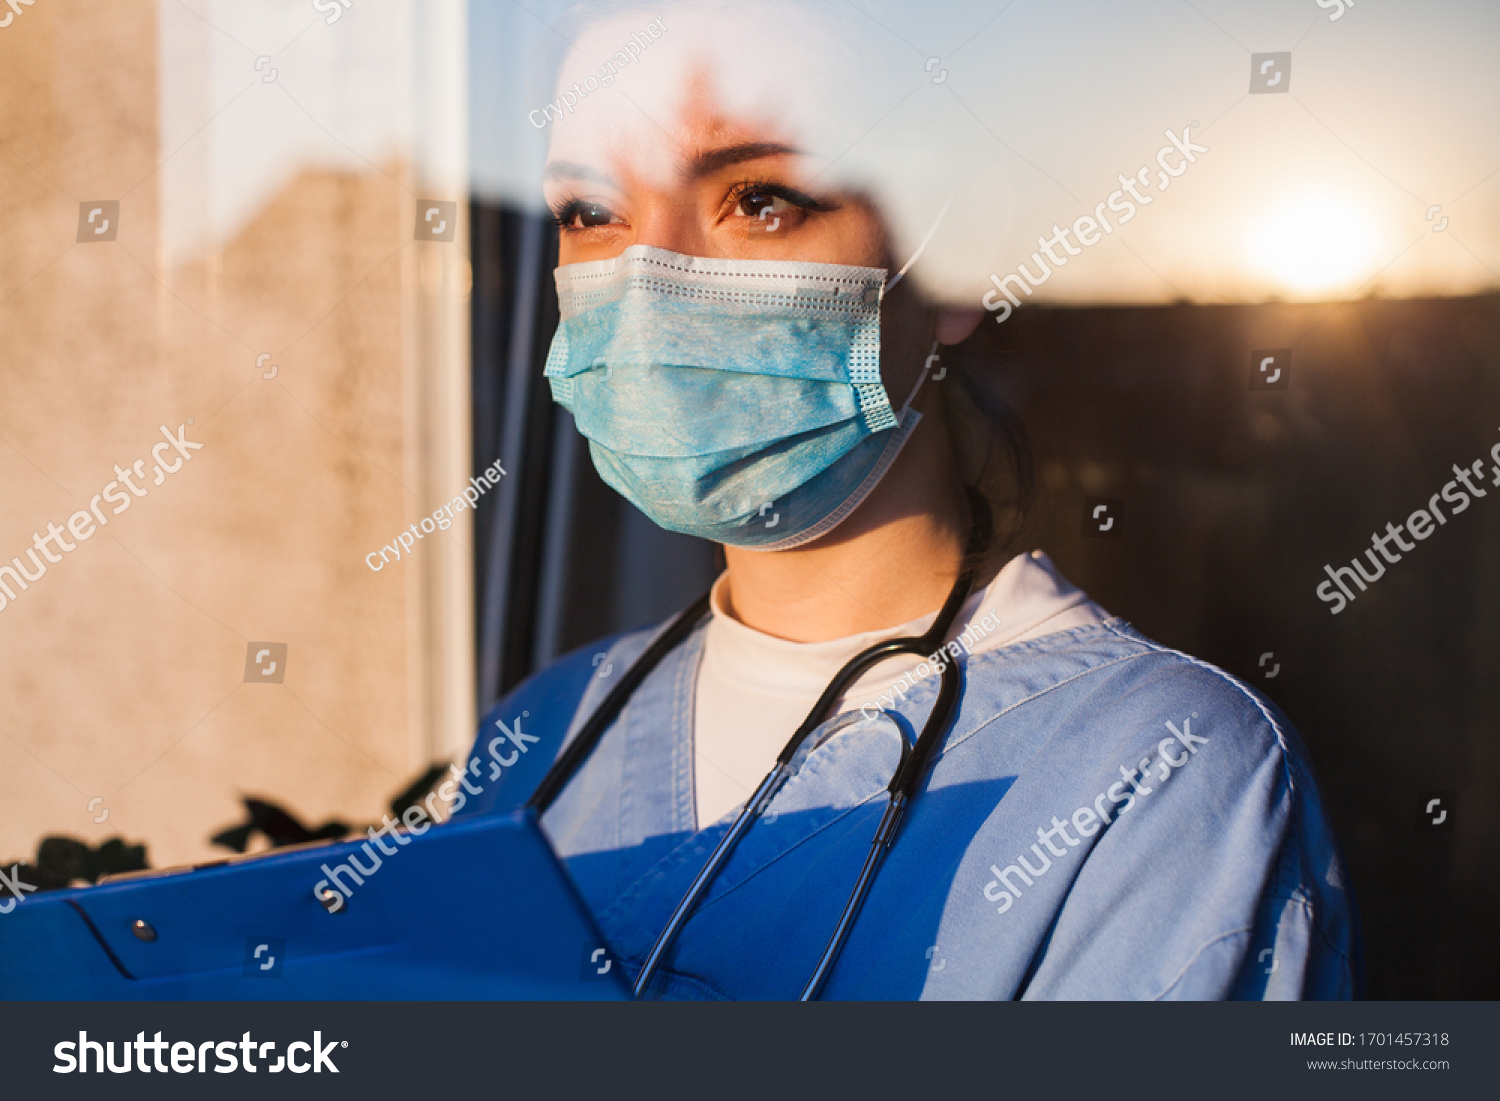 Young sad female caucasian UK US NHS EMS doctor carer looking through ICU window,fear uncertainty in eyes,wearing face mask gazing at sun,hope faith in overcoming Coronavirus COVID-19 pandemic crisis  #1701457318